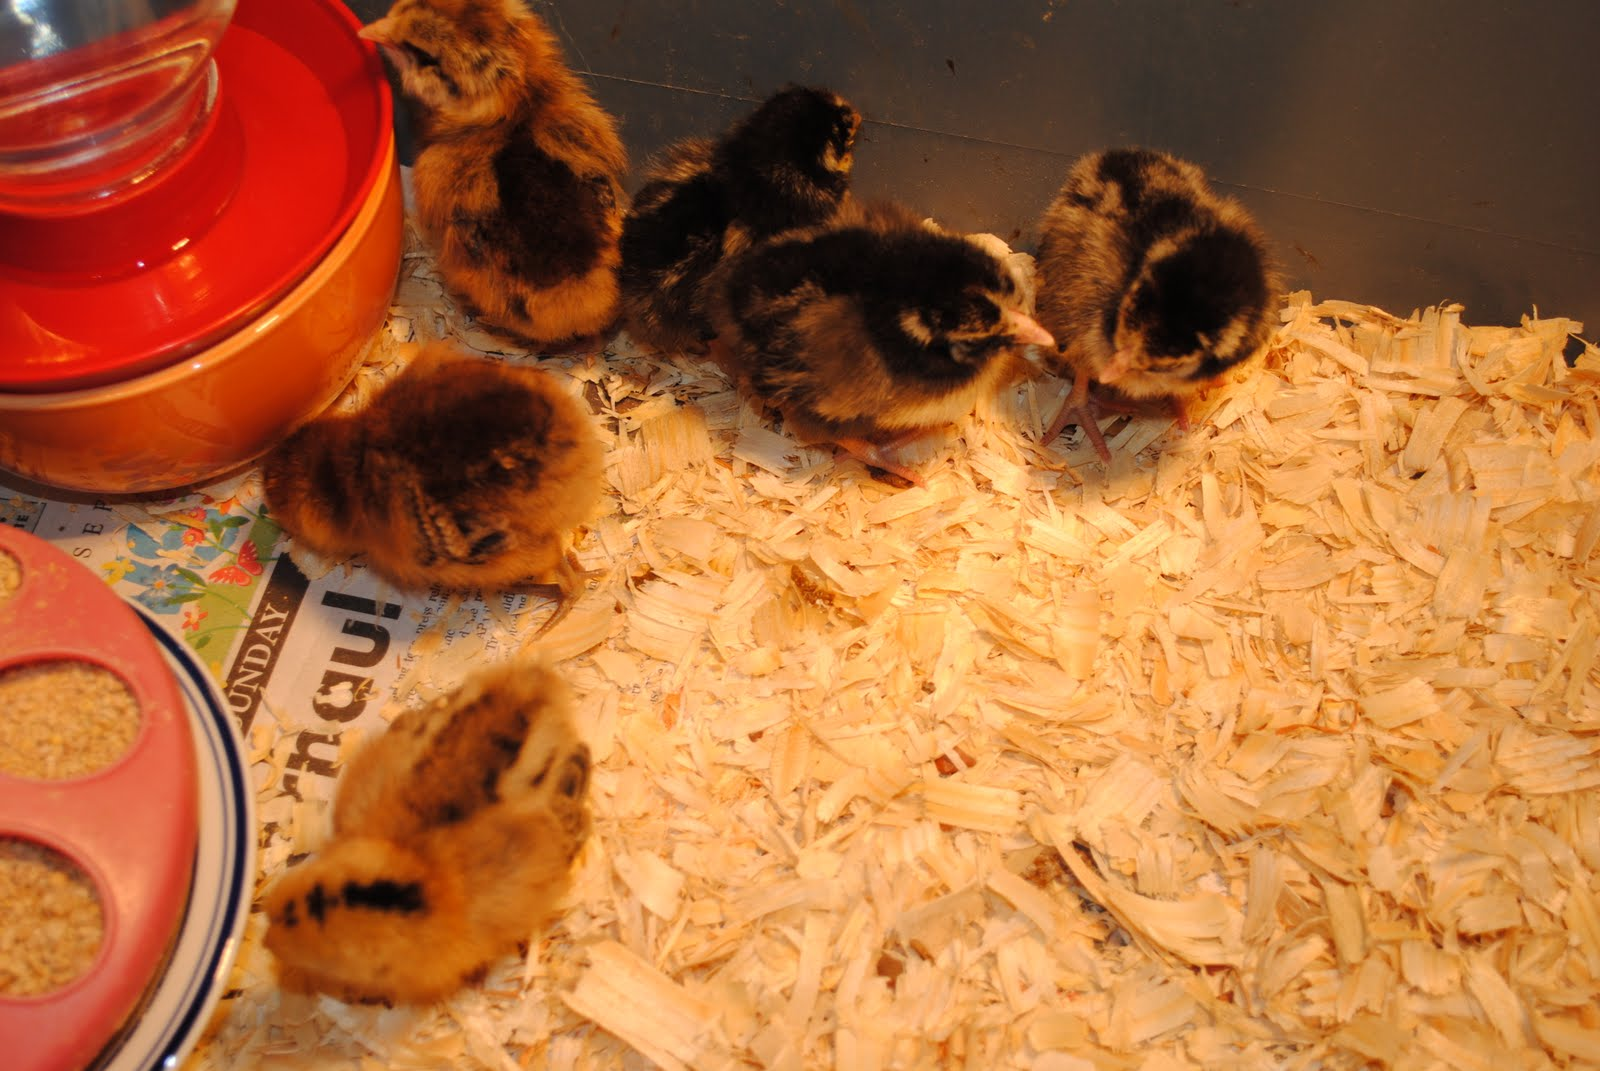 Our new may chicks